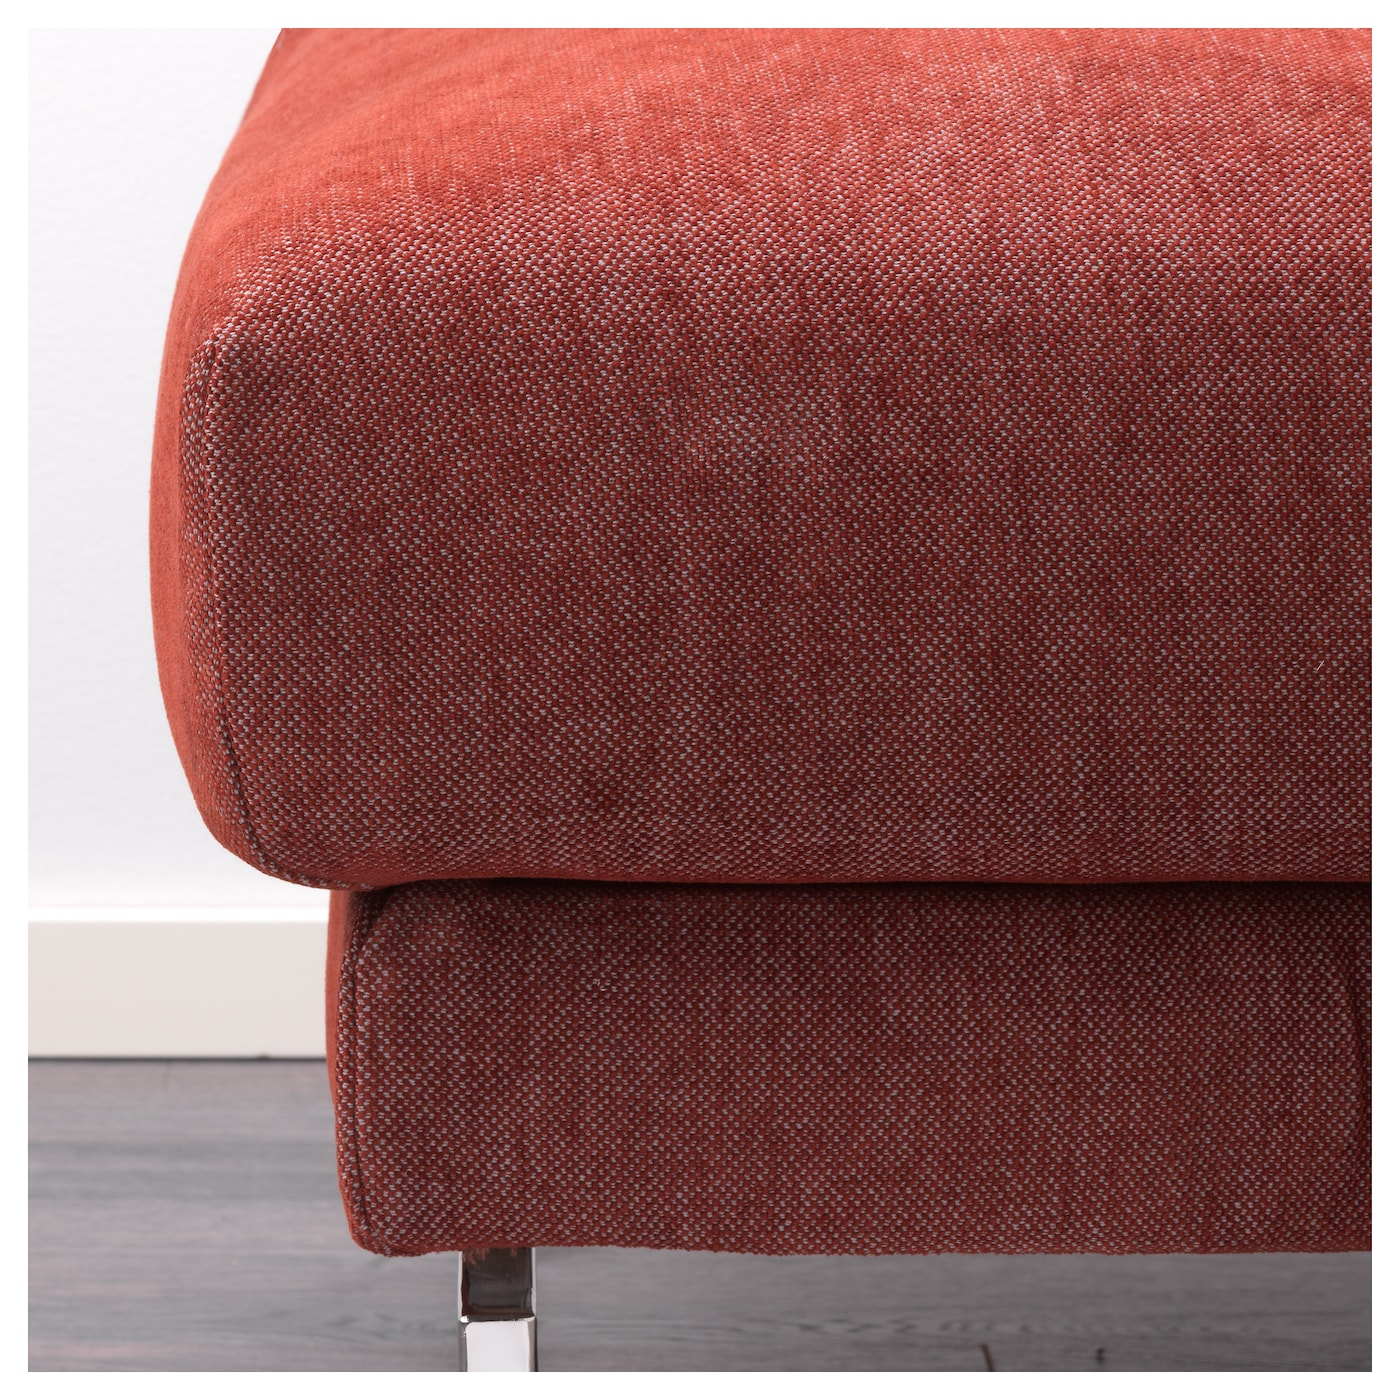 IKEA NOCKEBY footstool The cover is easy to keep clean as it is removable and can be machine washed.